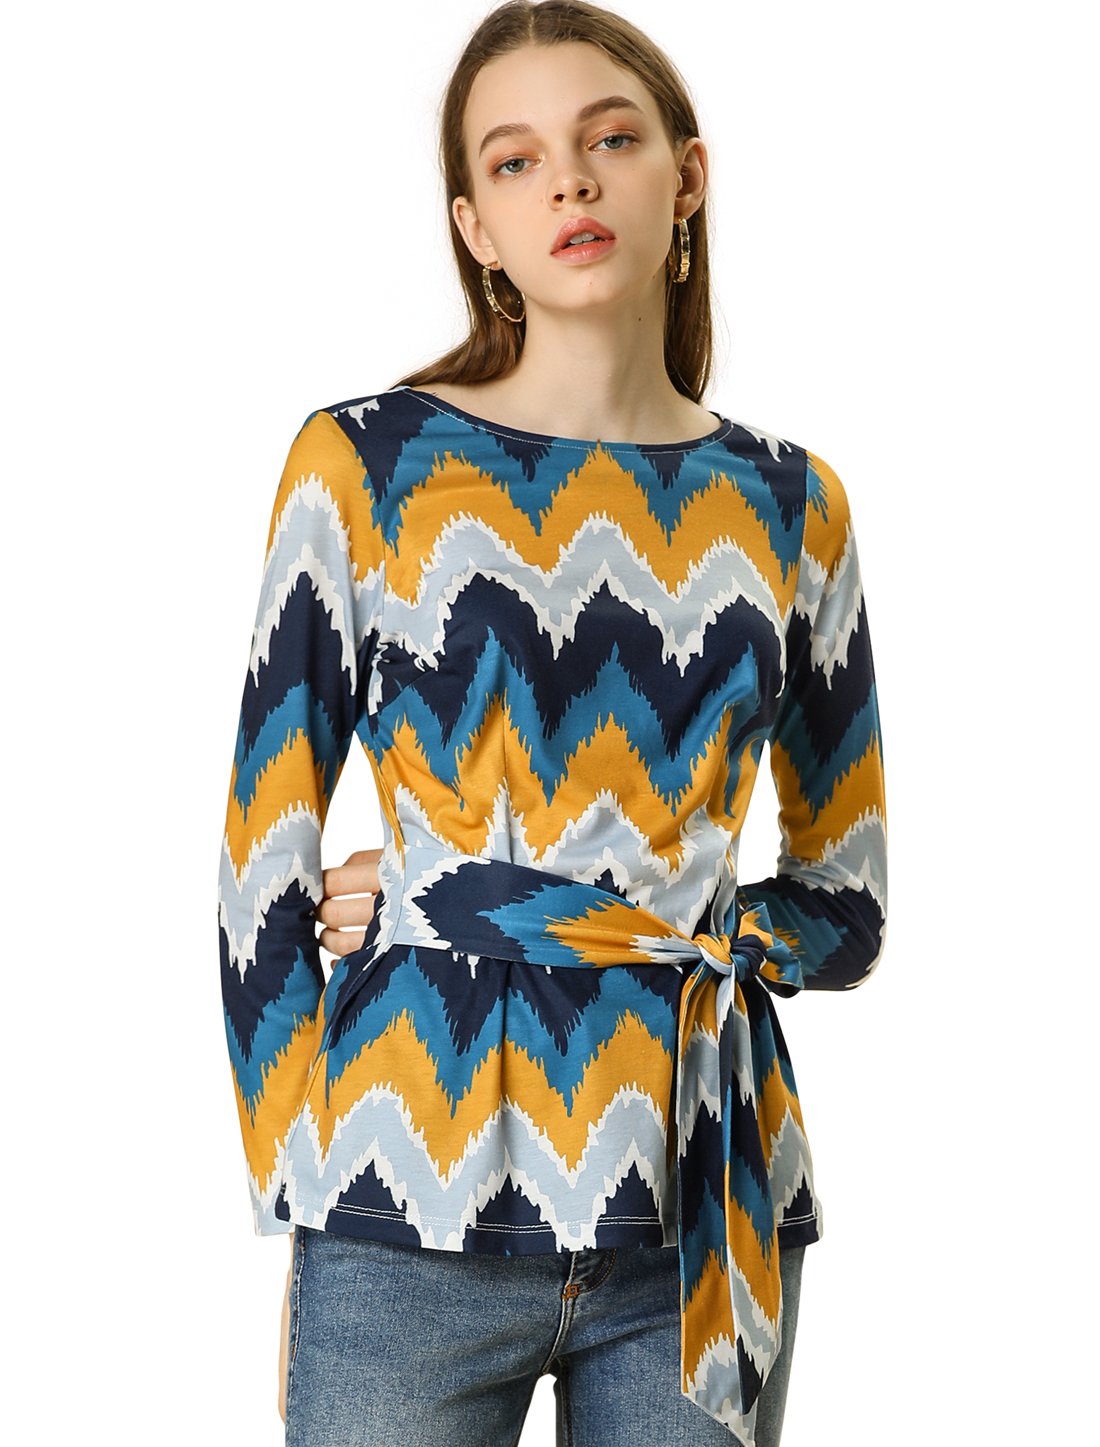 Allegra K Women's Zig-zag Pattern Round Neck Long Sleeve Belted Knit Top Blue S